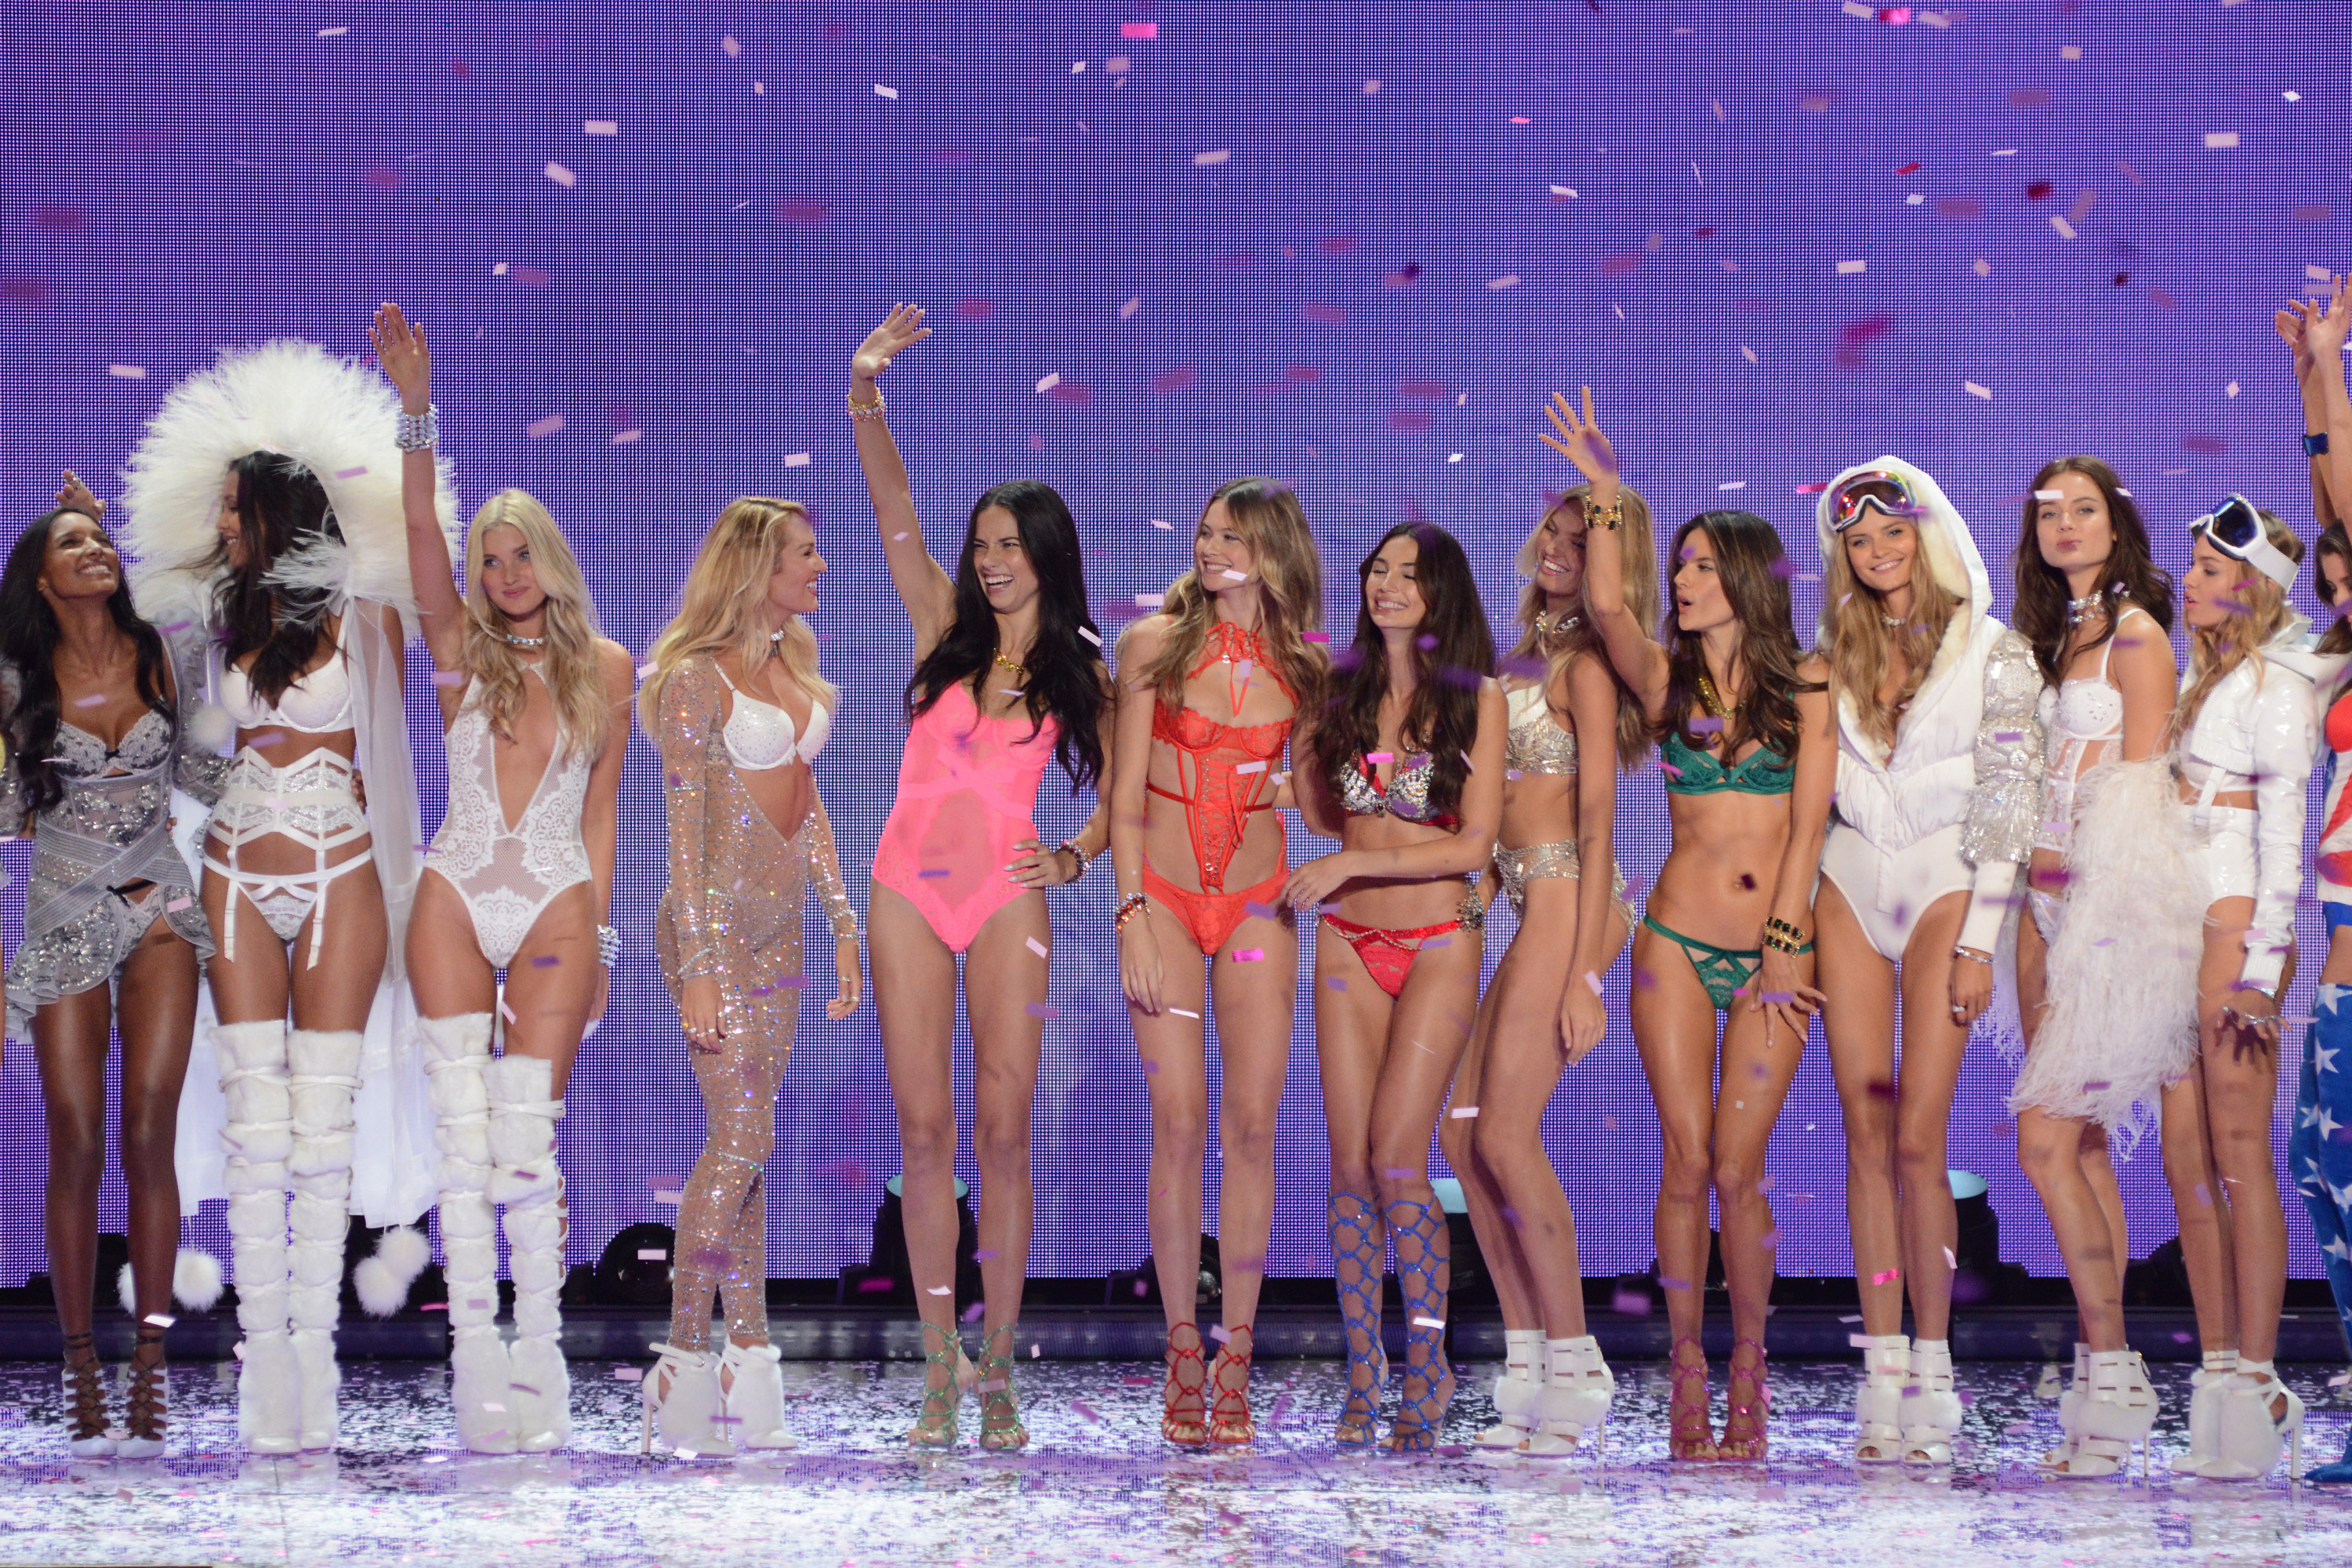 Models at the 2015 Victoria's Secret Fashion Show (Ivan Nikolov/WENN.com)